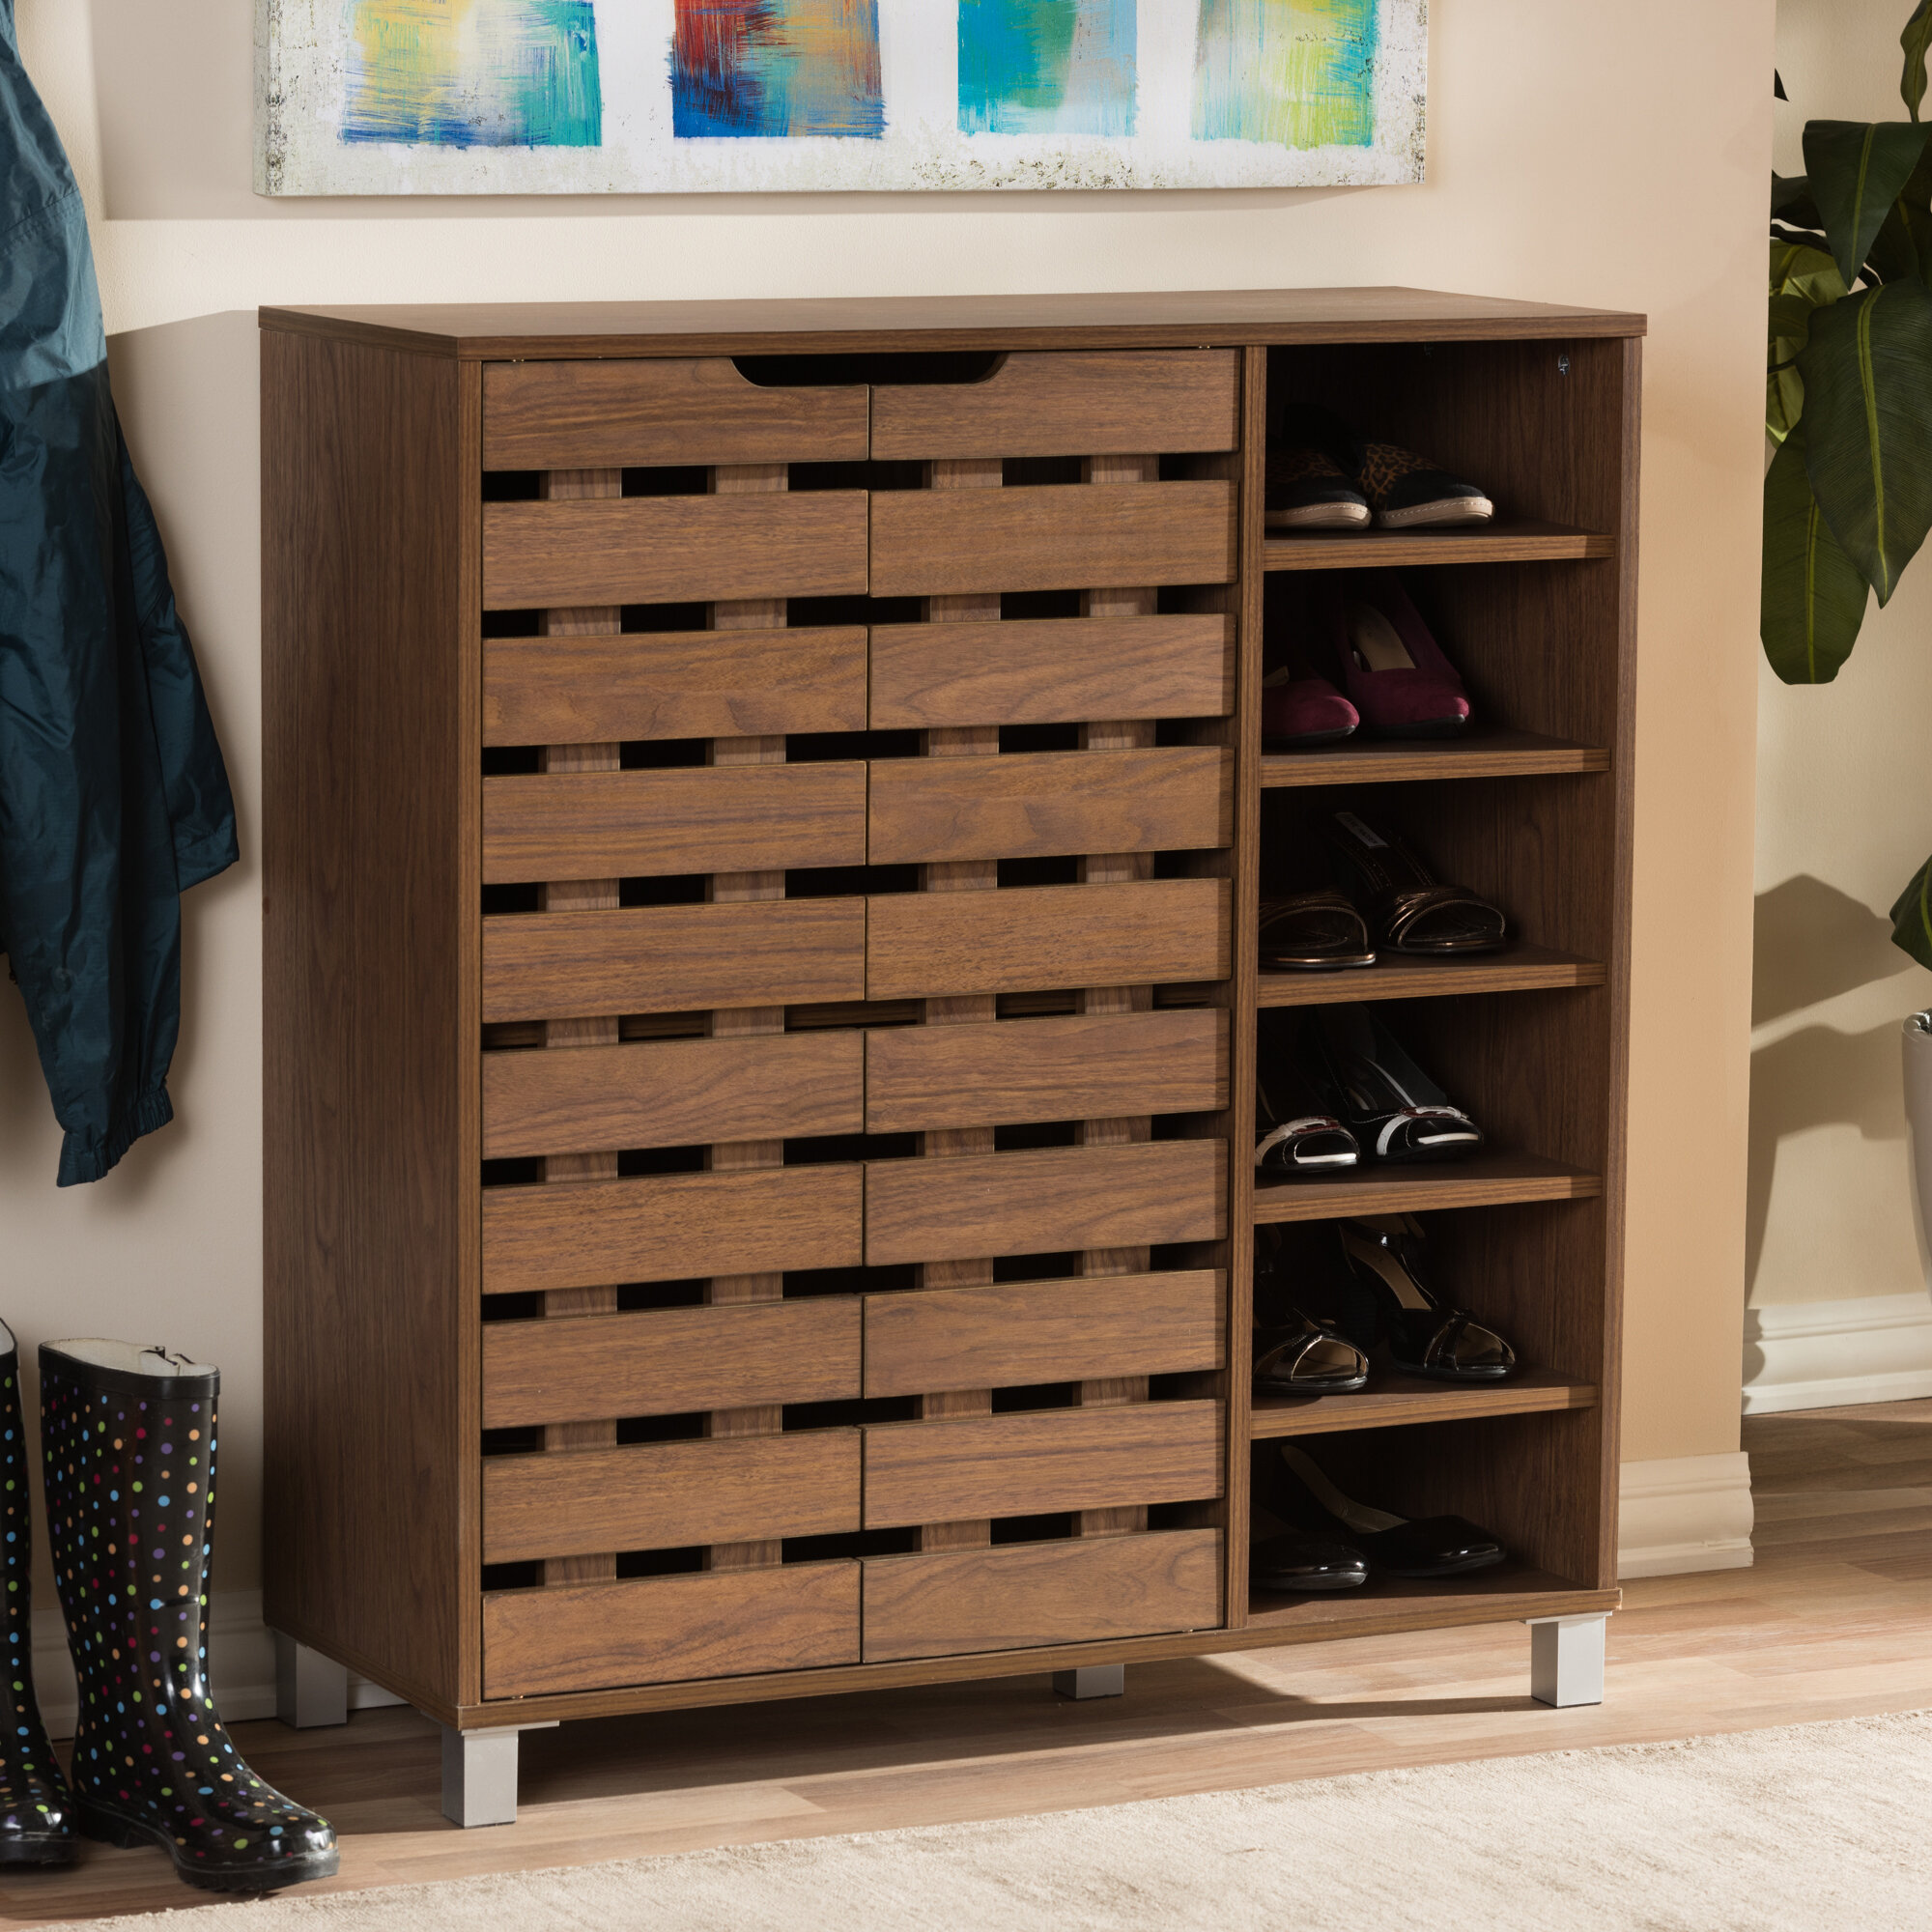 well plus master shoe full size also for closet in bedroom idea of rooms spaces design walk as ideas small